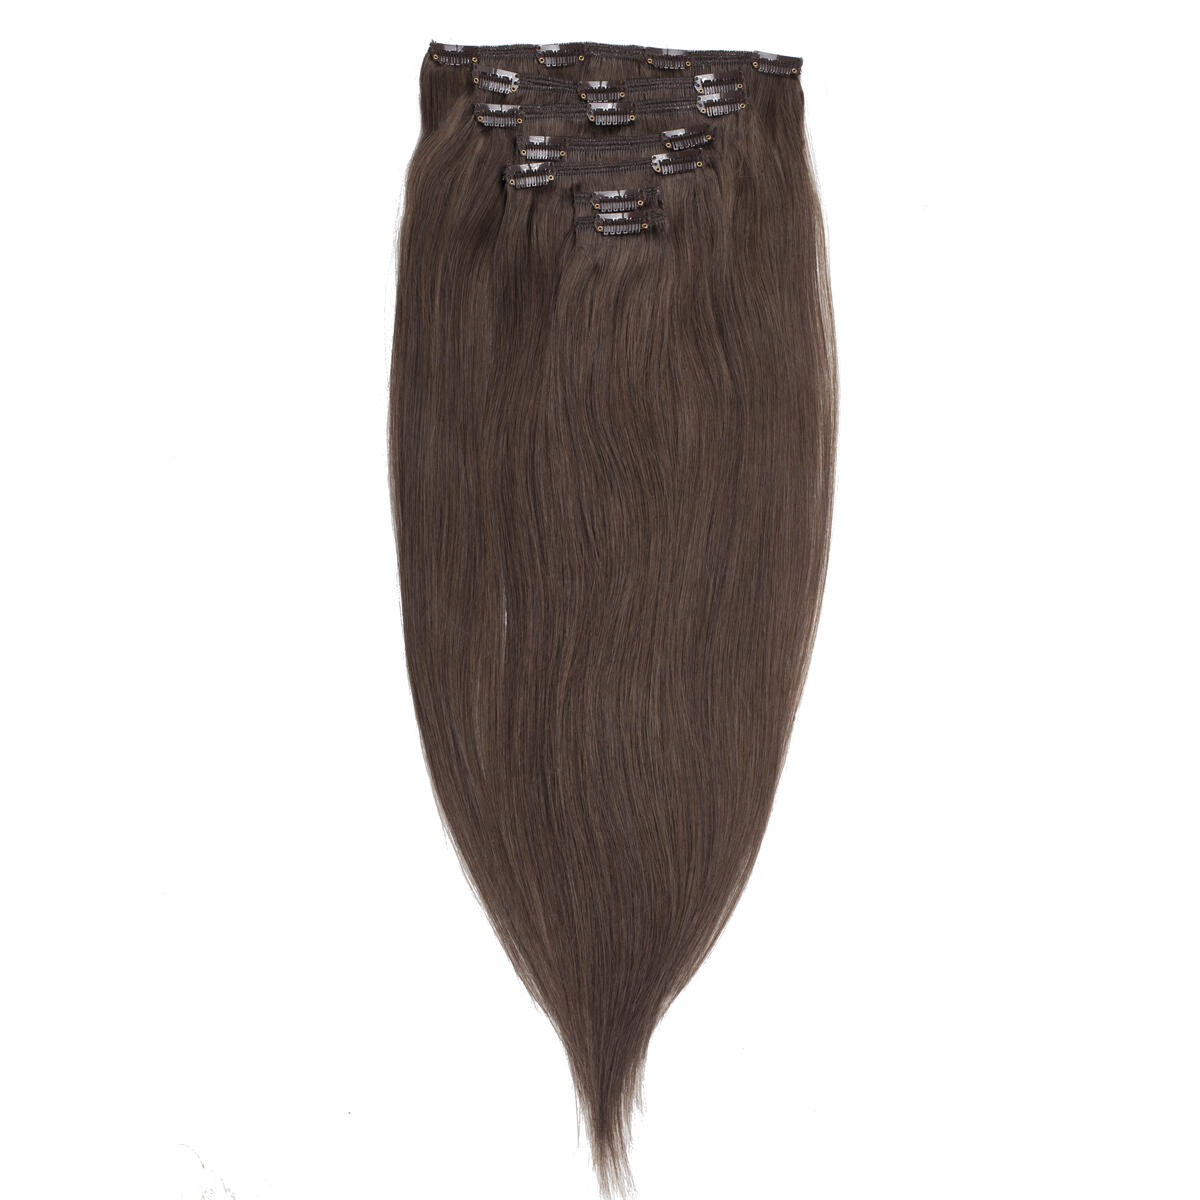 Clip-on Set Original 7 pieces 2.6 Dark Ash Brown 50 cm